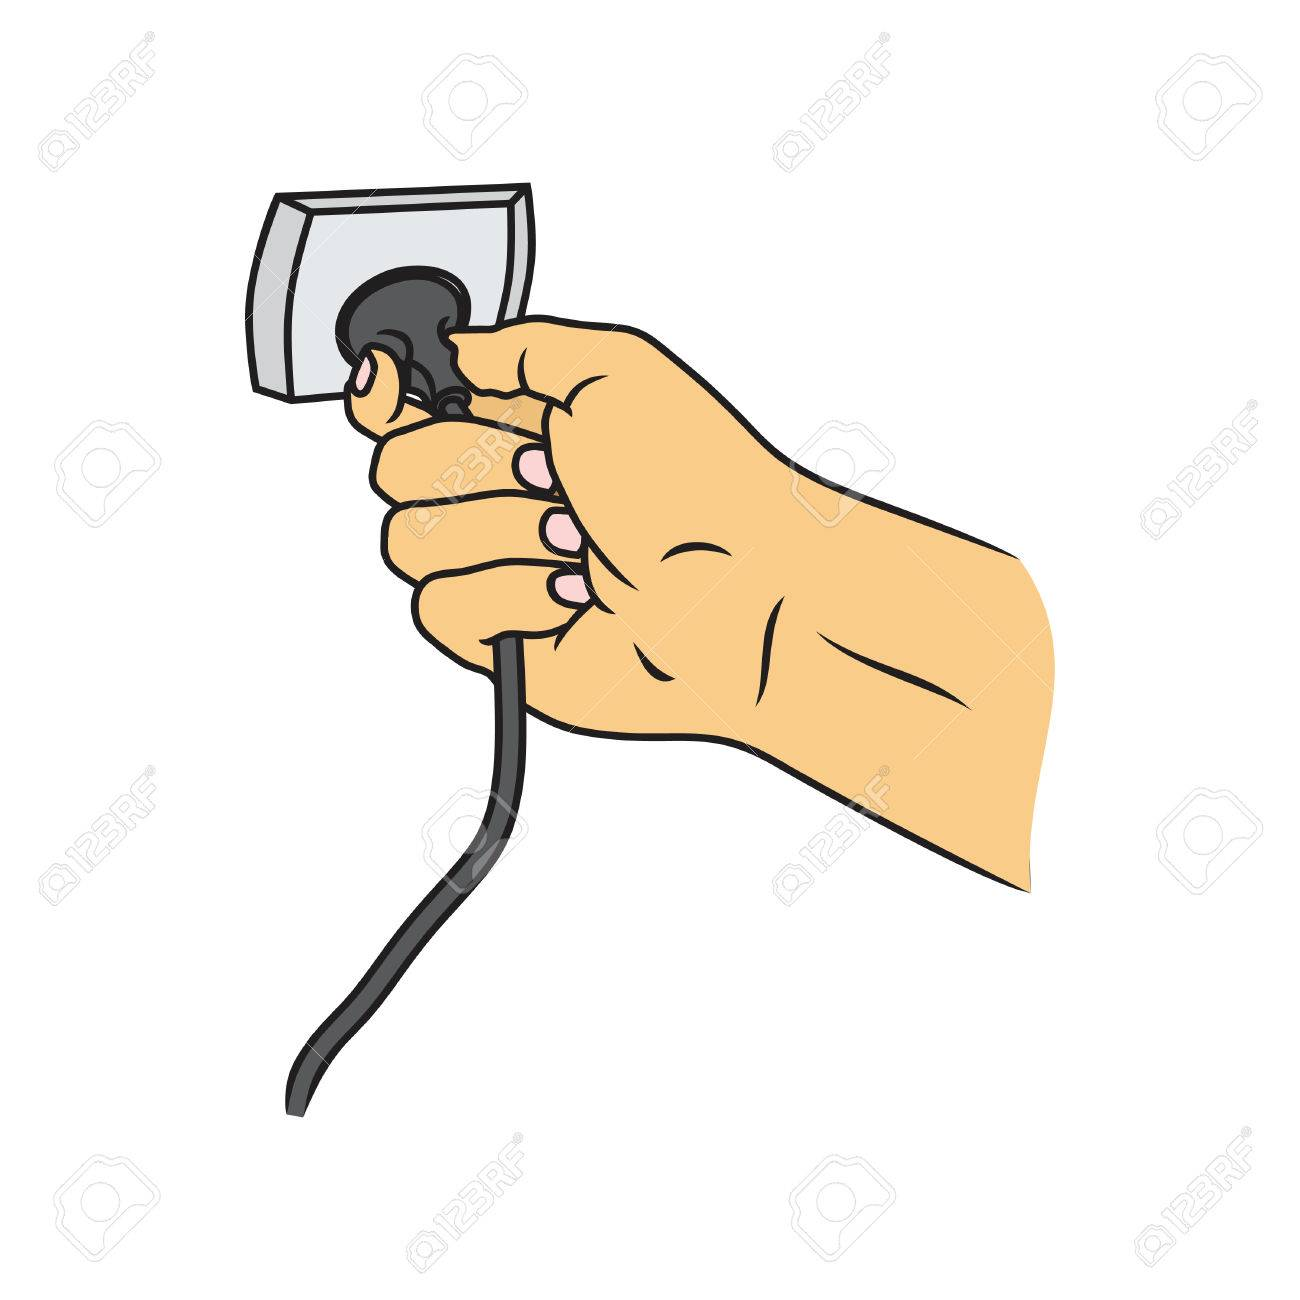 Hand Connecting Electrical Plug Vector And Turn Off The Cable ...